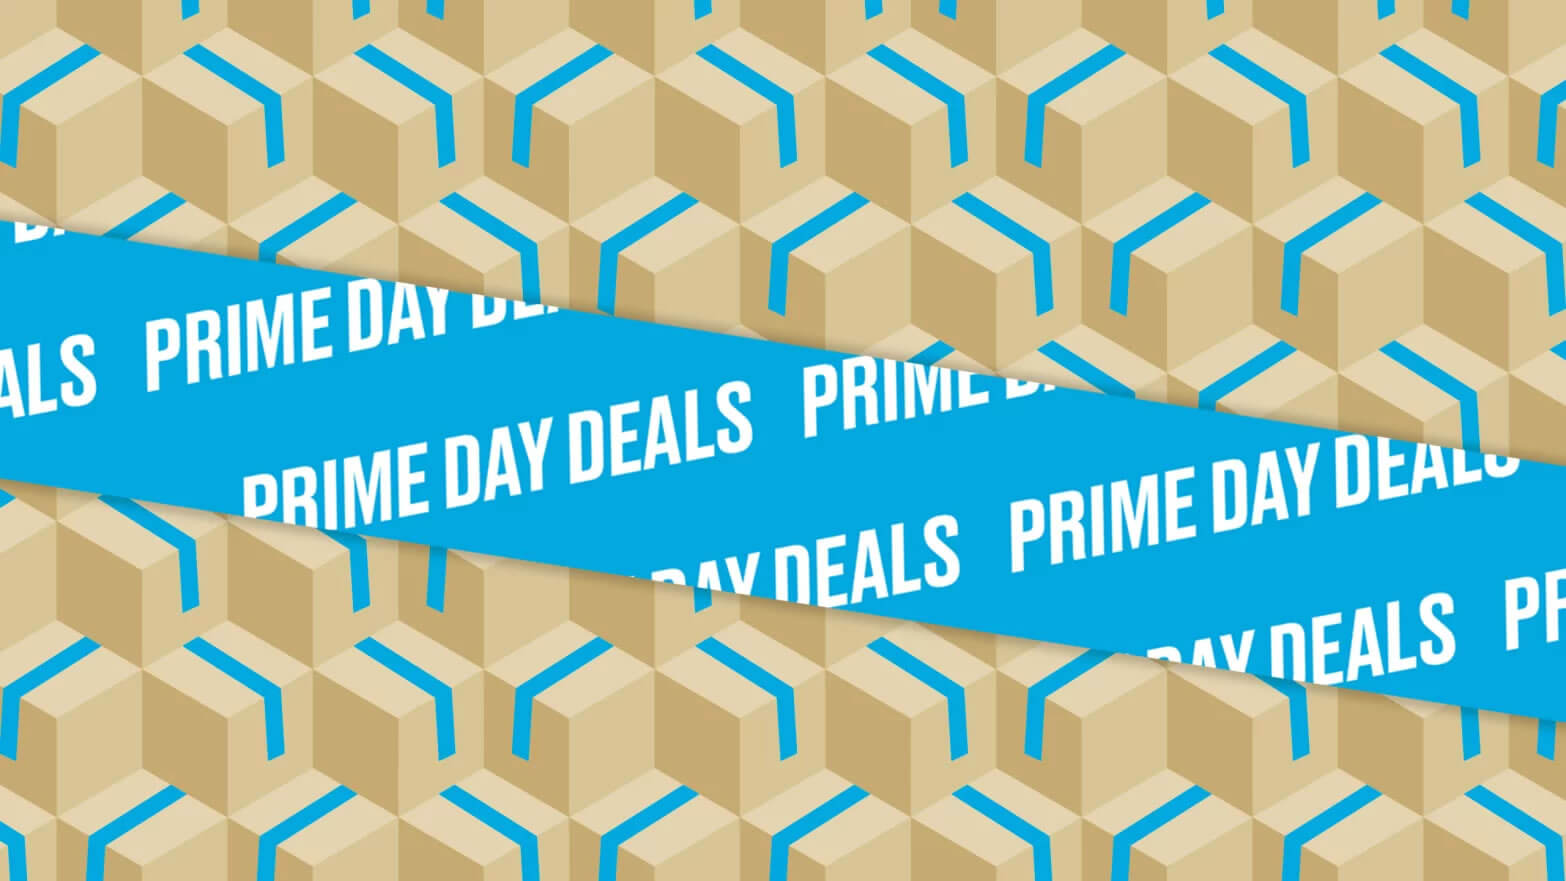 Here are 28 Prime Day deals on PC hardware and electronics that are still live